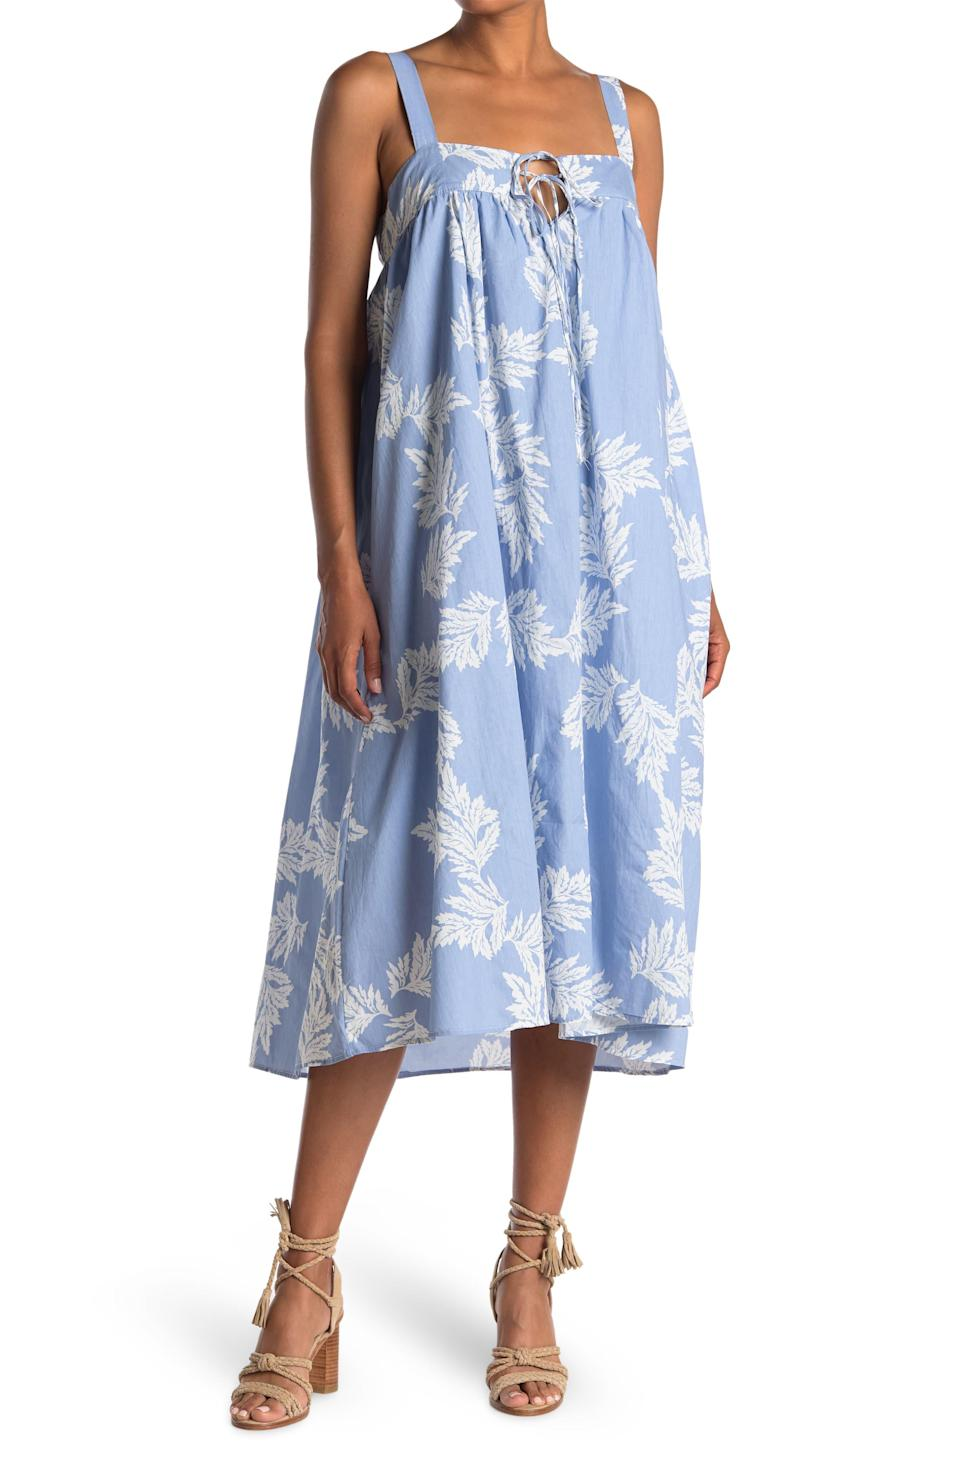 """<h2>Nordstrom Rack</h2><br><strong>Dates: </strong>Now - June 2<br><strong>Sale:</strong> Spring dresses up to 70% off<br><strong>Code:</strong> None<br><br><em>Shop <strong><a href=""""https://www.nordstromrack.com/clearance/Women"""" rel=""""nofollow noopener"""" target=""""_blank"""" data-ylk=""""slk:Nordstrom Rack"""" class=""""link rapid-noclick-resp"""">Nordstrom Rack</a></strong></em><br><br><br><strong>Stitchdrop</strong> Floral Sleeveless Tie Front Midi Dress, $, available at <a href=""""https://go.skimresources.com/?id=30283X879131&url=https%3A%2F%2Fwww.nordstromrack.com%2Fs%2Fstitchdrop-floral-sleeveless-tie-front-midi-dress%2Fn3573251%3Fcolor%3DLANAI%2520BIRDY%26eid%3D487889"""" rel=""""nofollow noopener"""" target=""""_blank"""" data-ylk=""""slk:Nordstrom Rack"""" class=""""link rapid-noclick-resp"""">Nordstrom Rack</a>"""